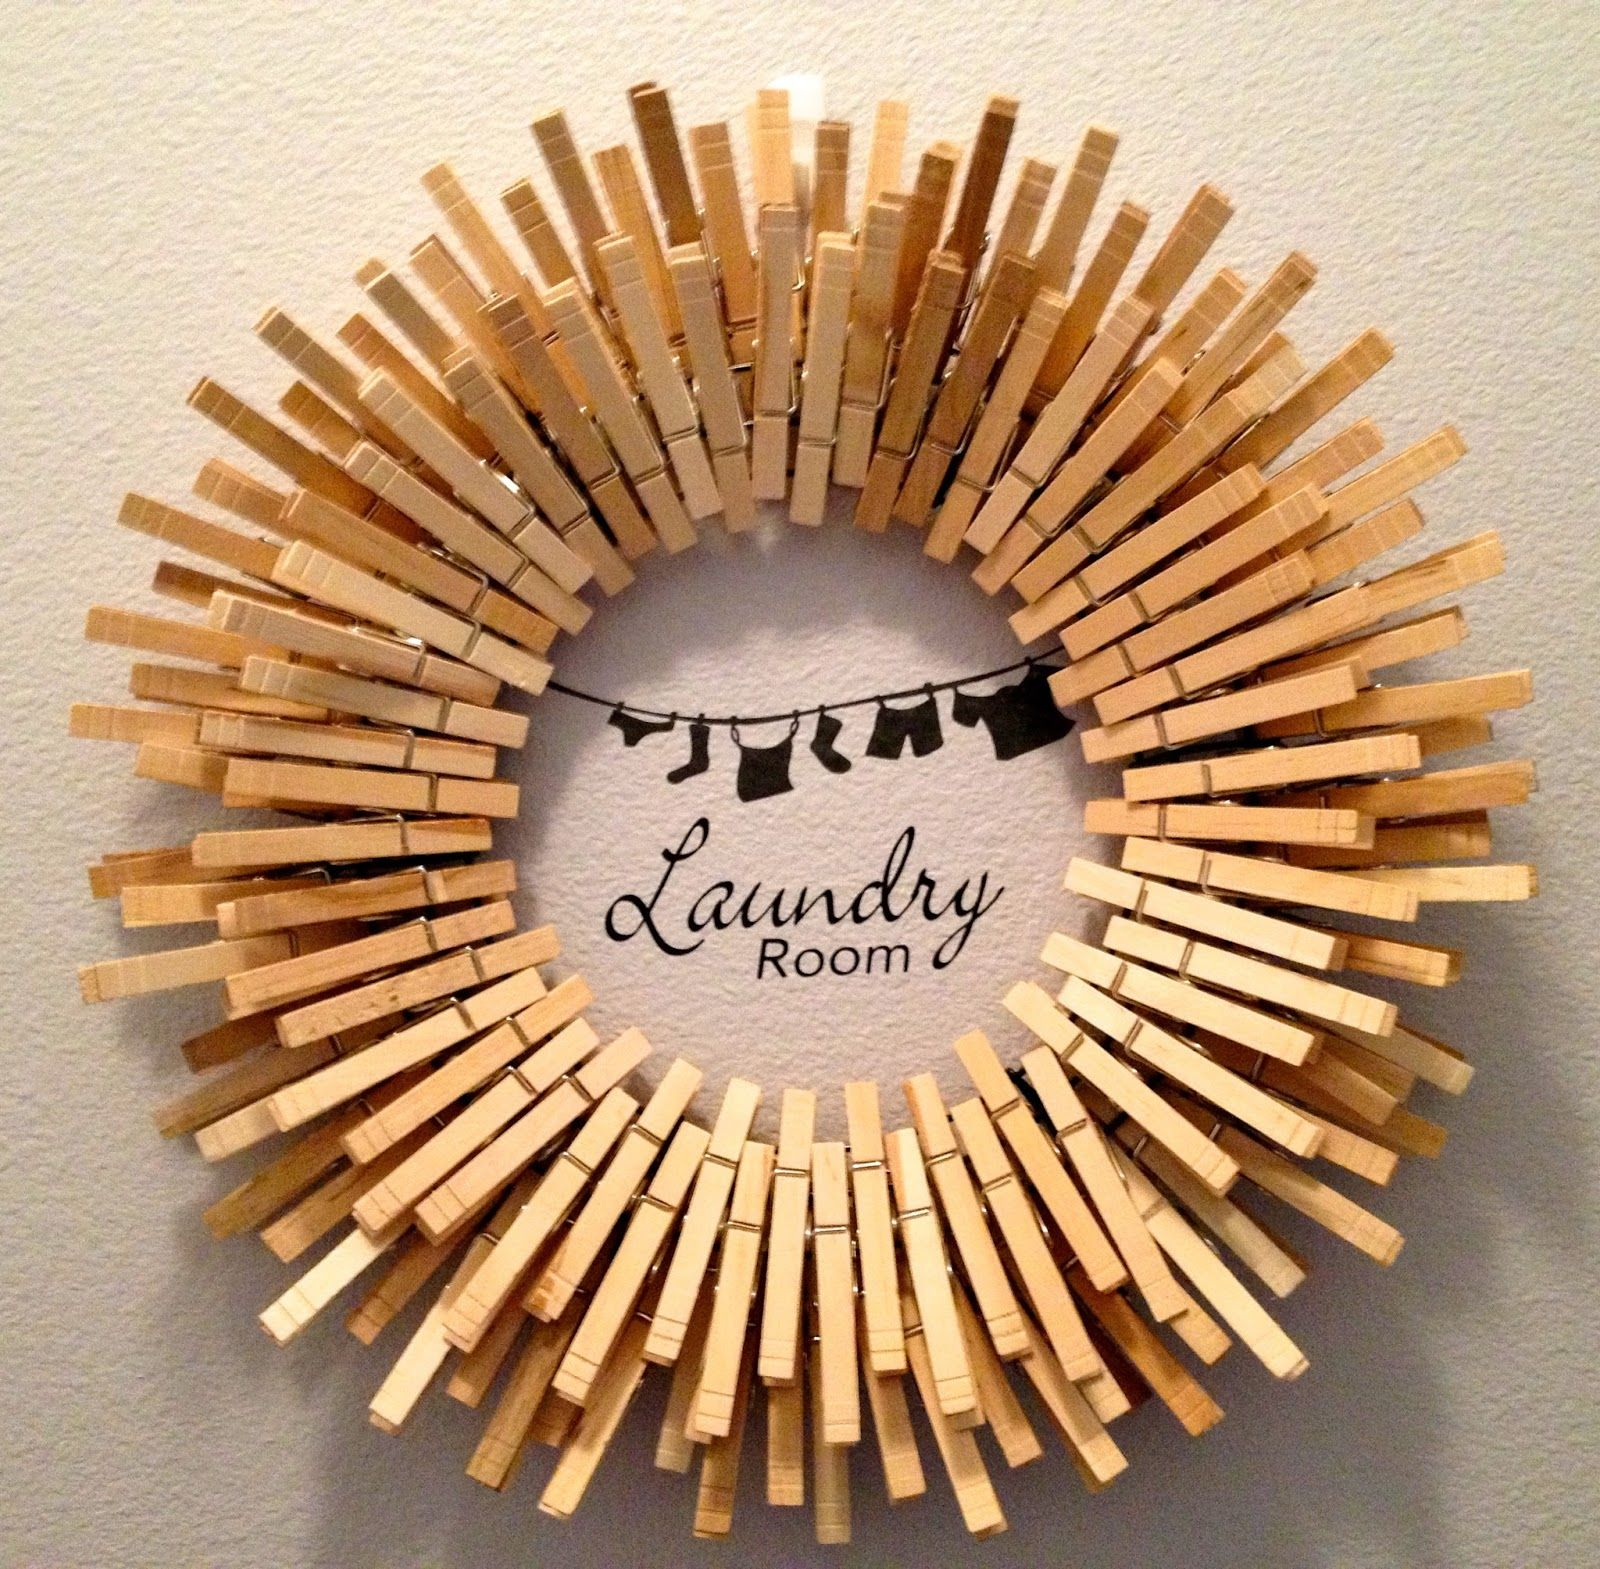 Starburst Laundry Room Clothespin Wreath Clothes Pin Wreath Clothes Pin Crafts Clothes Pins